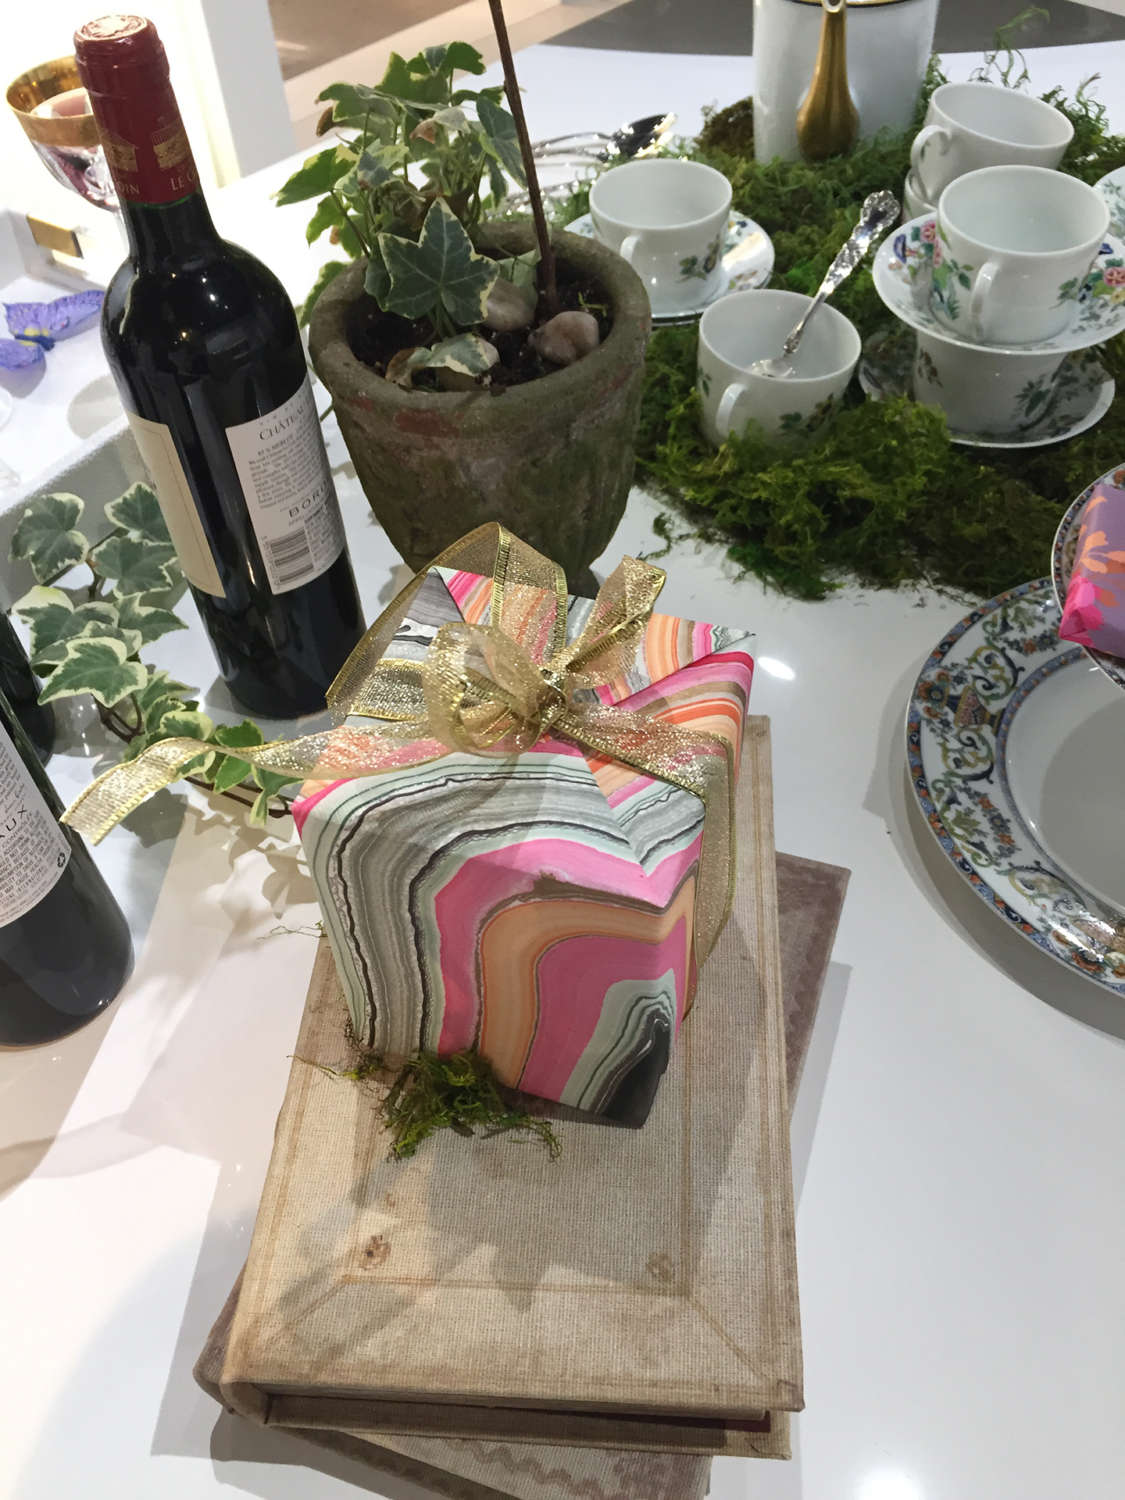 Wrapped gift, wine and ivy garlands at the Art of The Table.